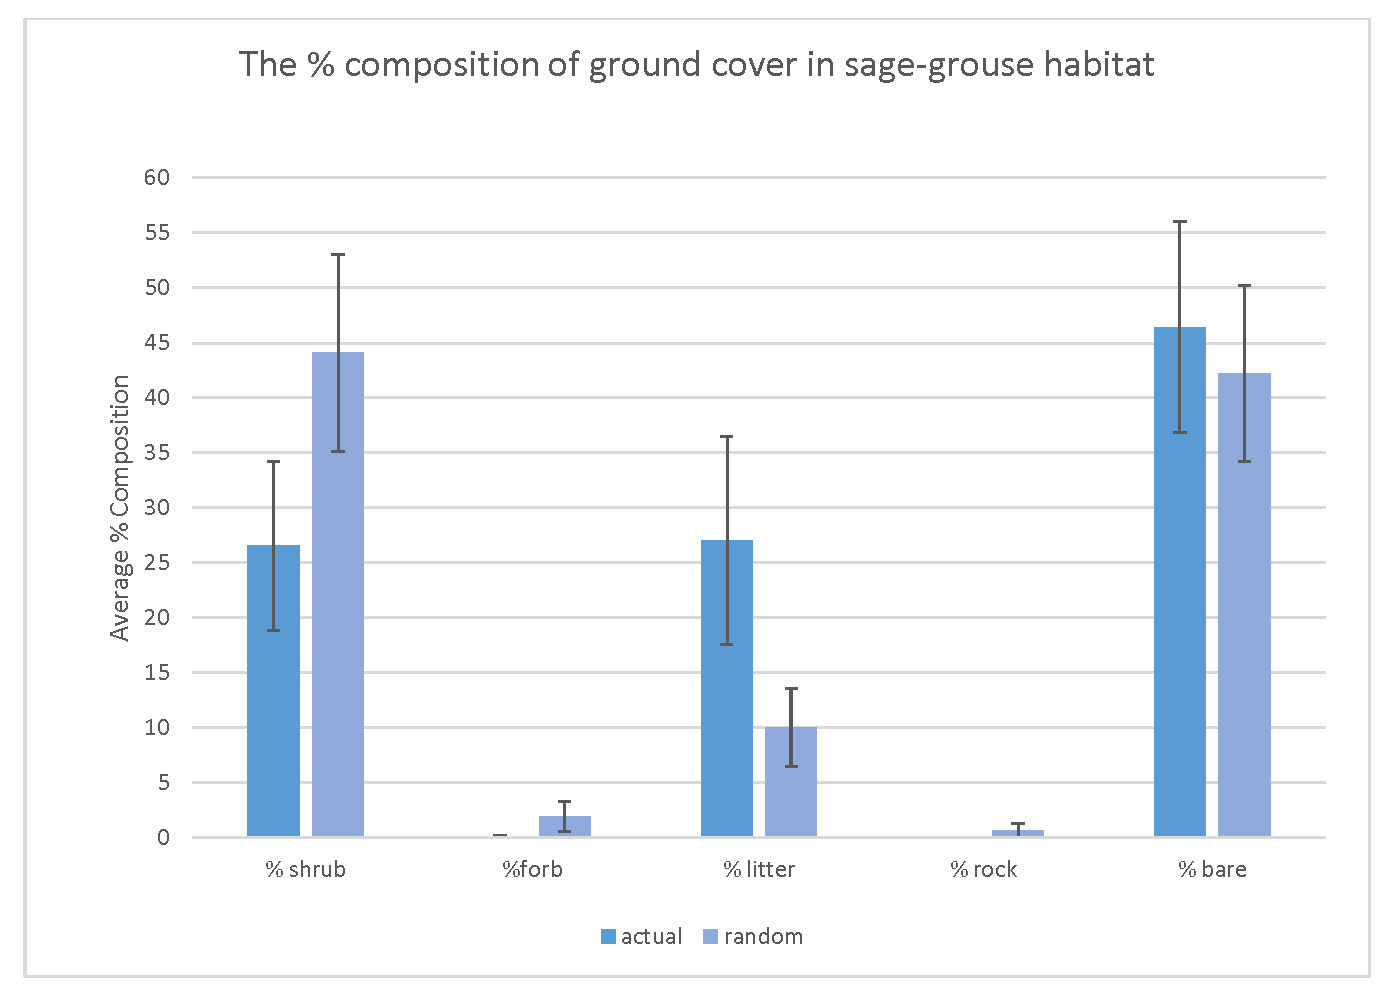 Percent composition of ground cover in sage-grouse habitat